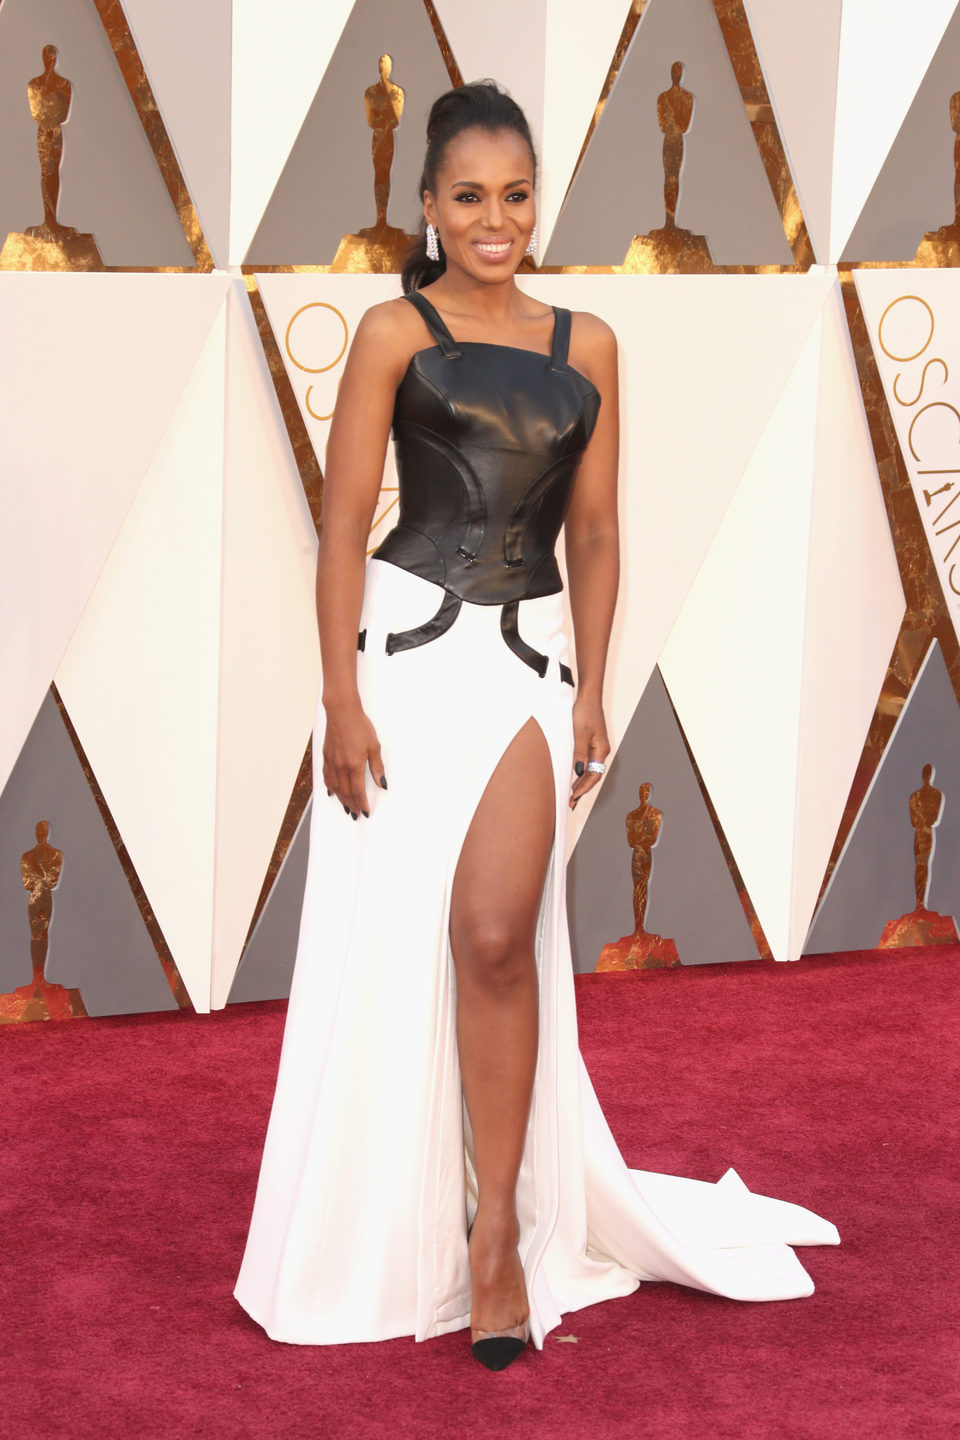 Kerry Washington at the Oscars 2016 red carpet